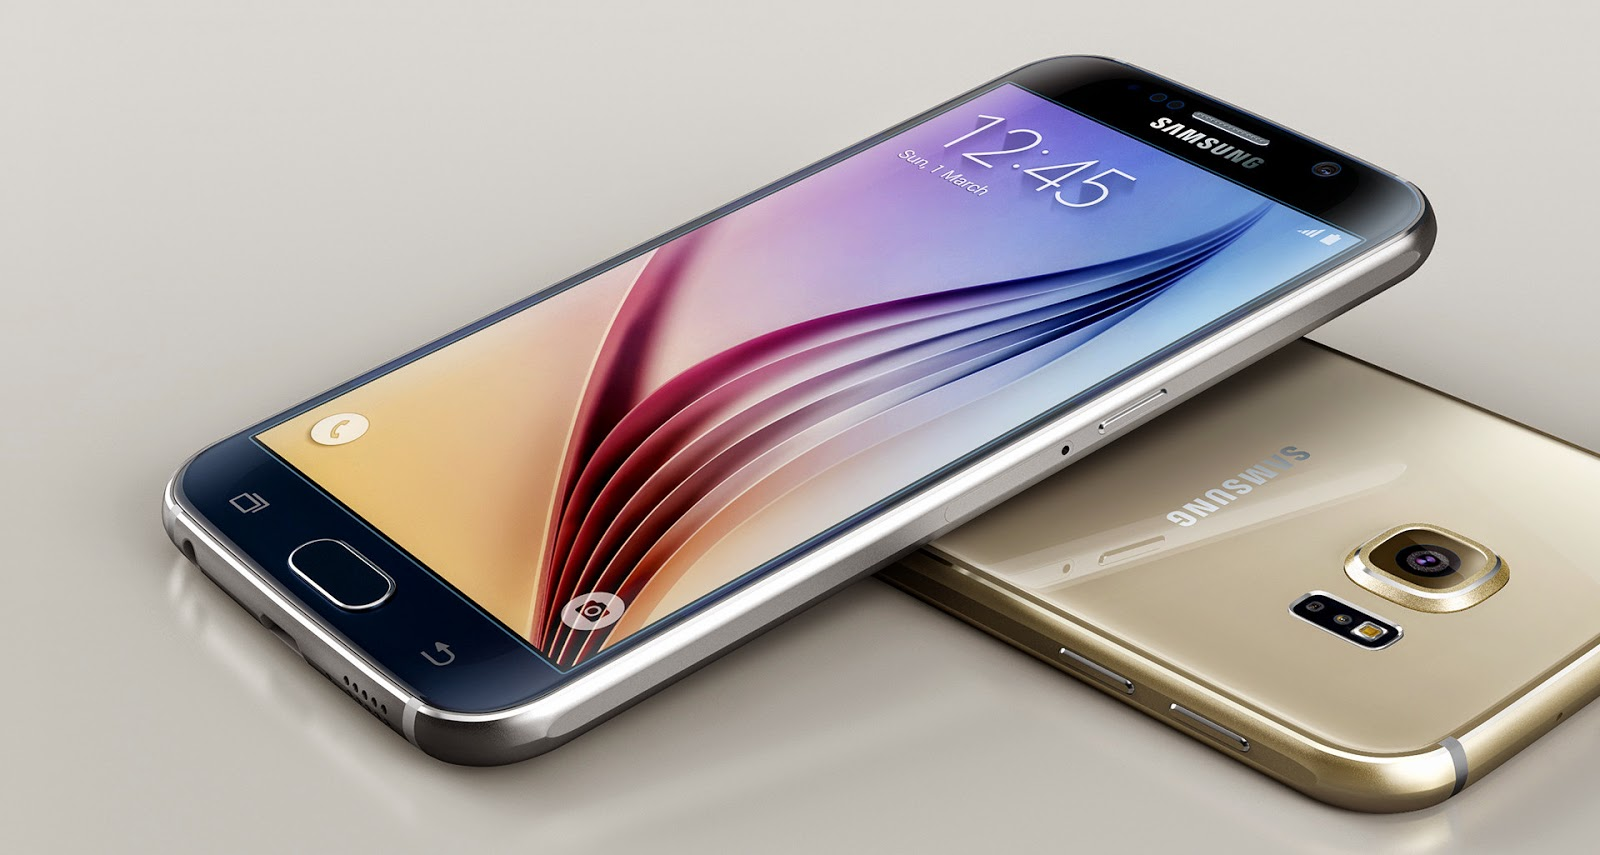 Camera New Samsung Android Phones new samsung galaxy s6 mobile phone prices for 2015 apk android 2015